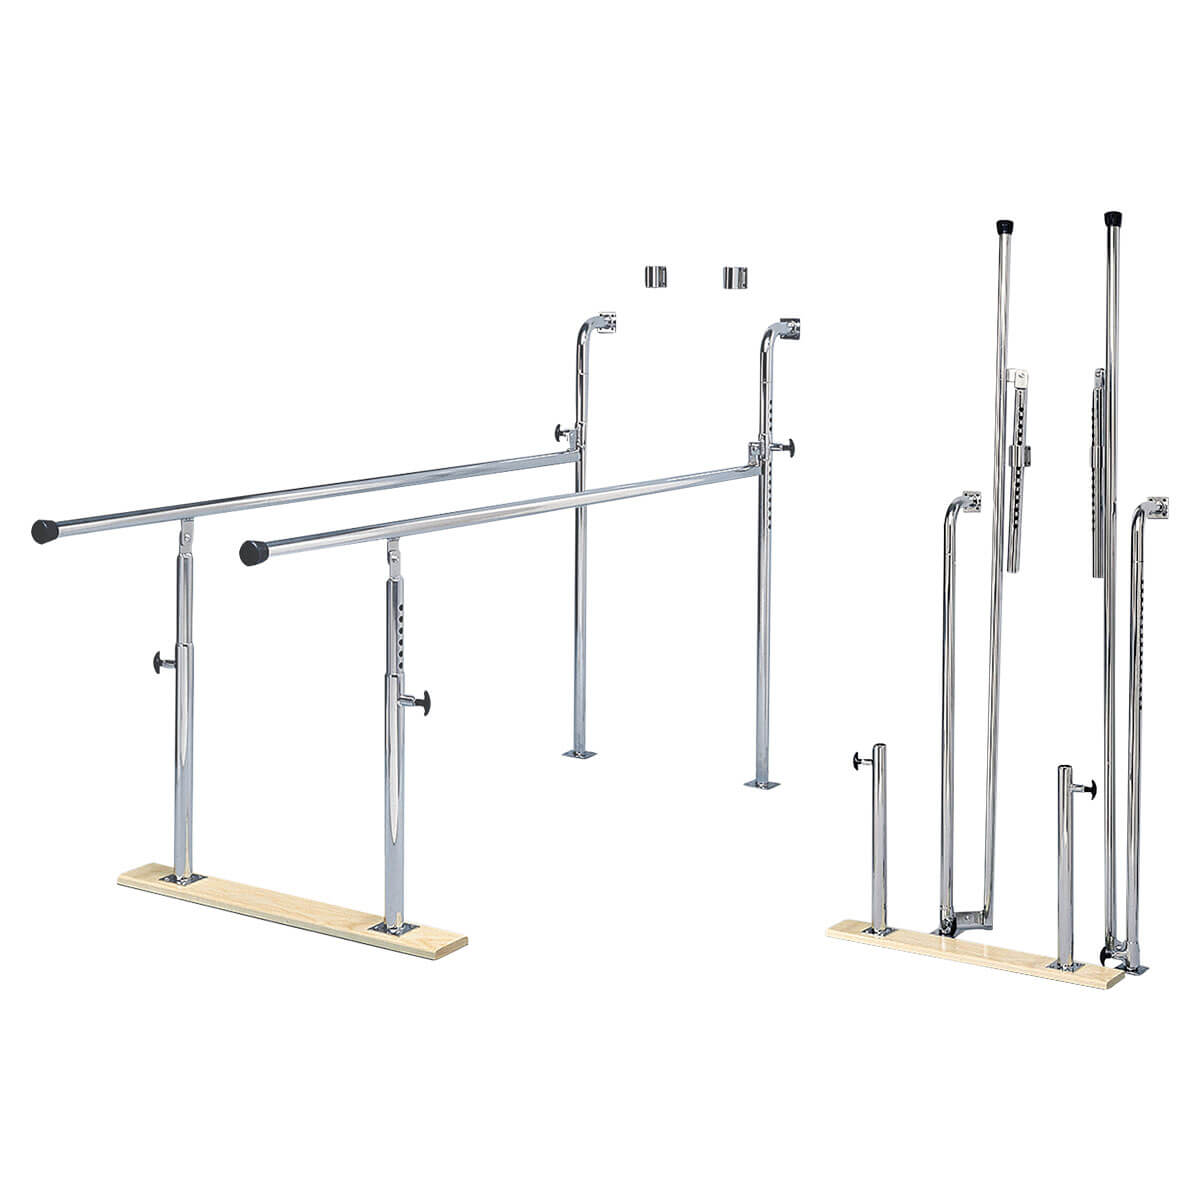 Wall-Mounted Folding Parallel Bars with Wood Base and Adjustable Height (28